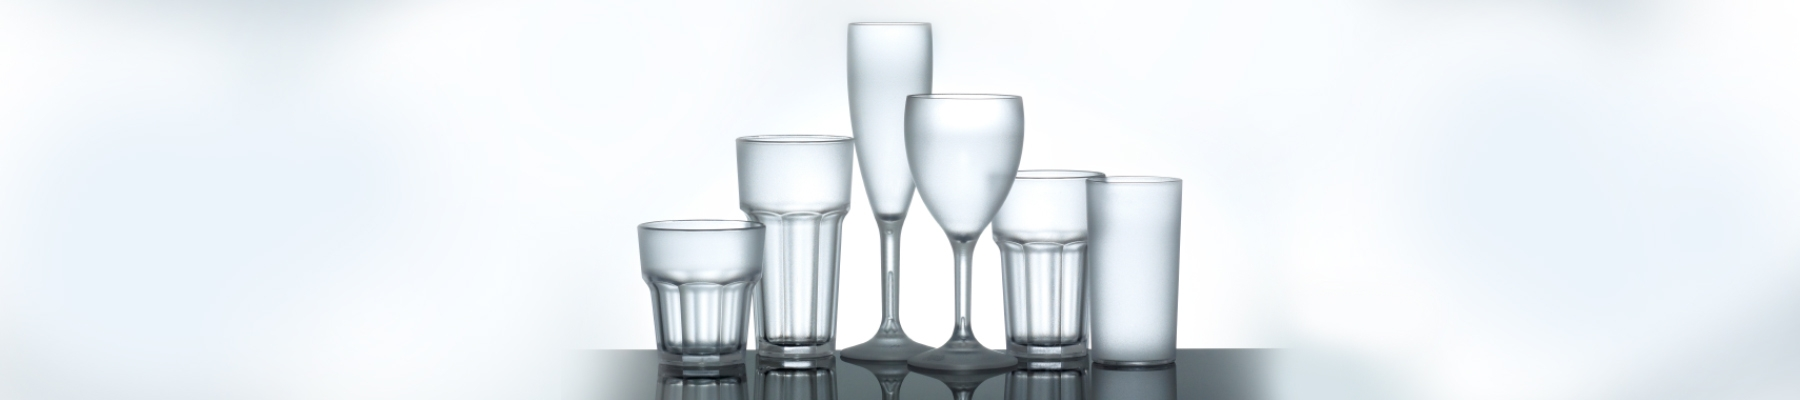 Frosted Plastic Glassware, Frosted Glasses, Reusable Plastic Glassware